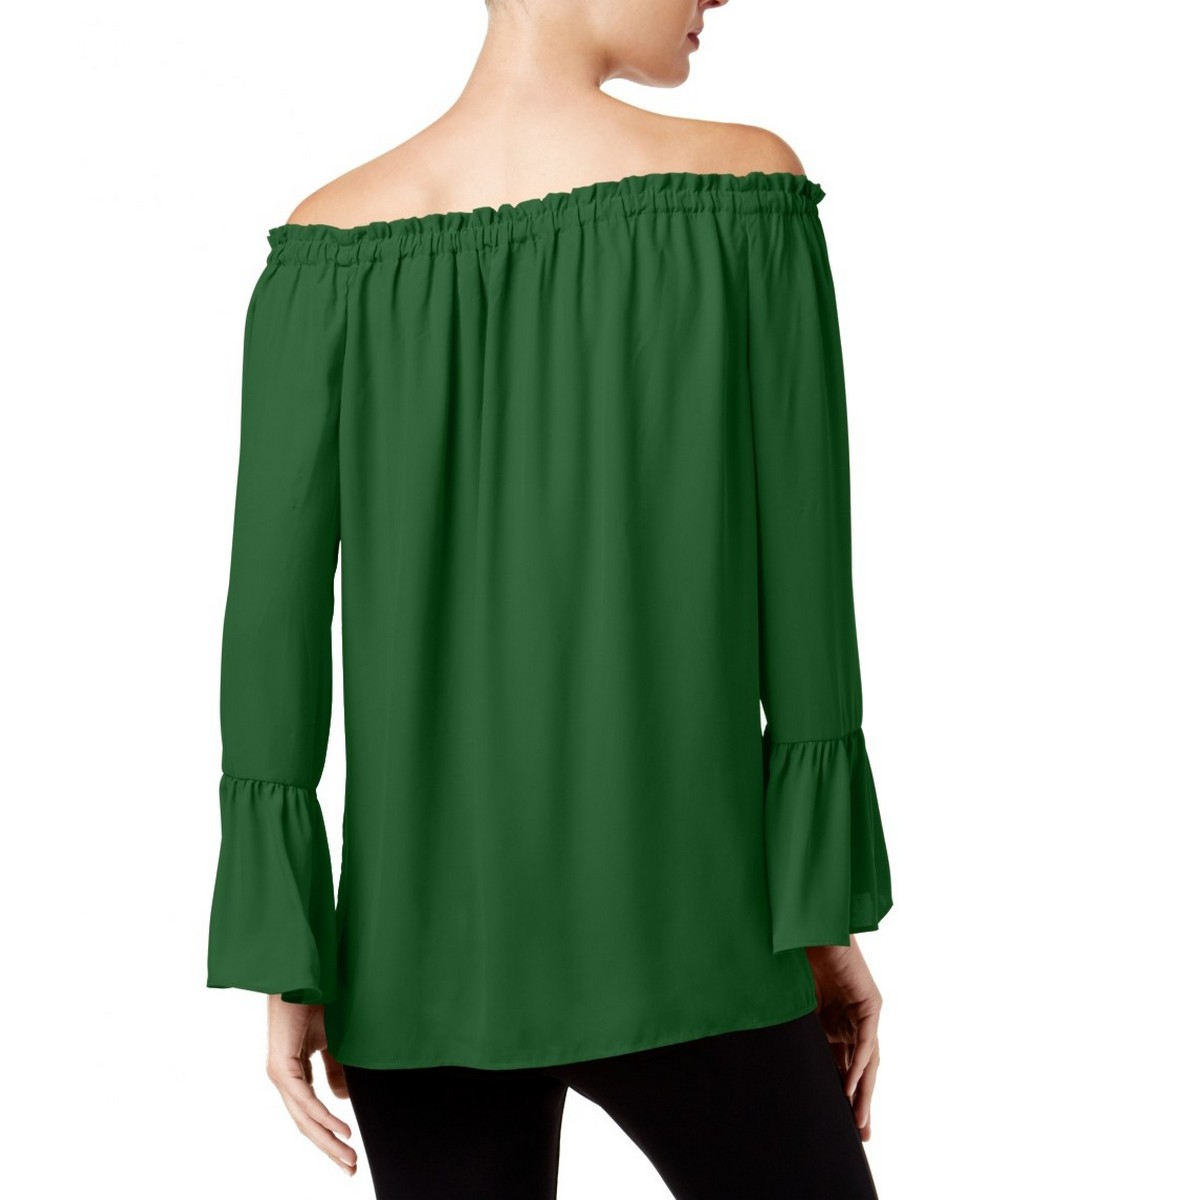 ALFANI-NEW-Women-039-s-Off-the-shoulder-Bell-sleeve-Blouse-Shirt-Top-TEDO thumbnail 4